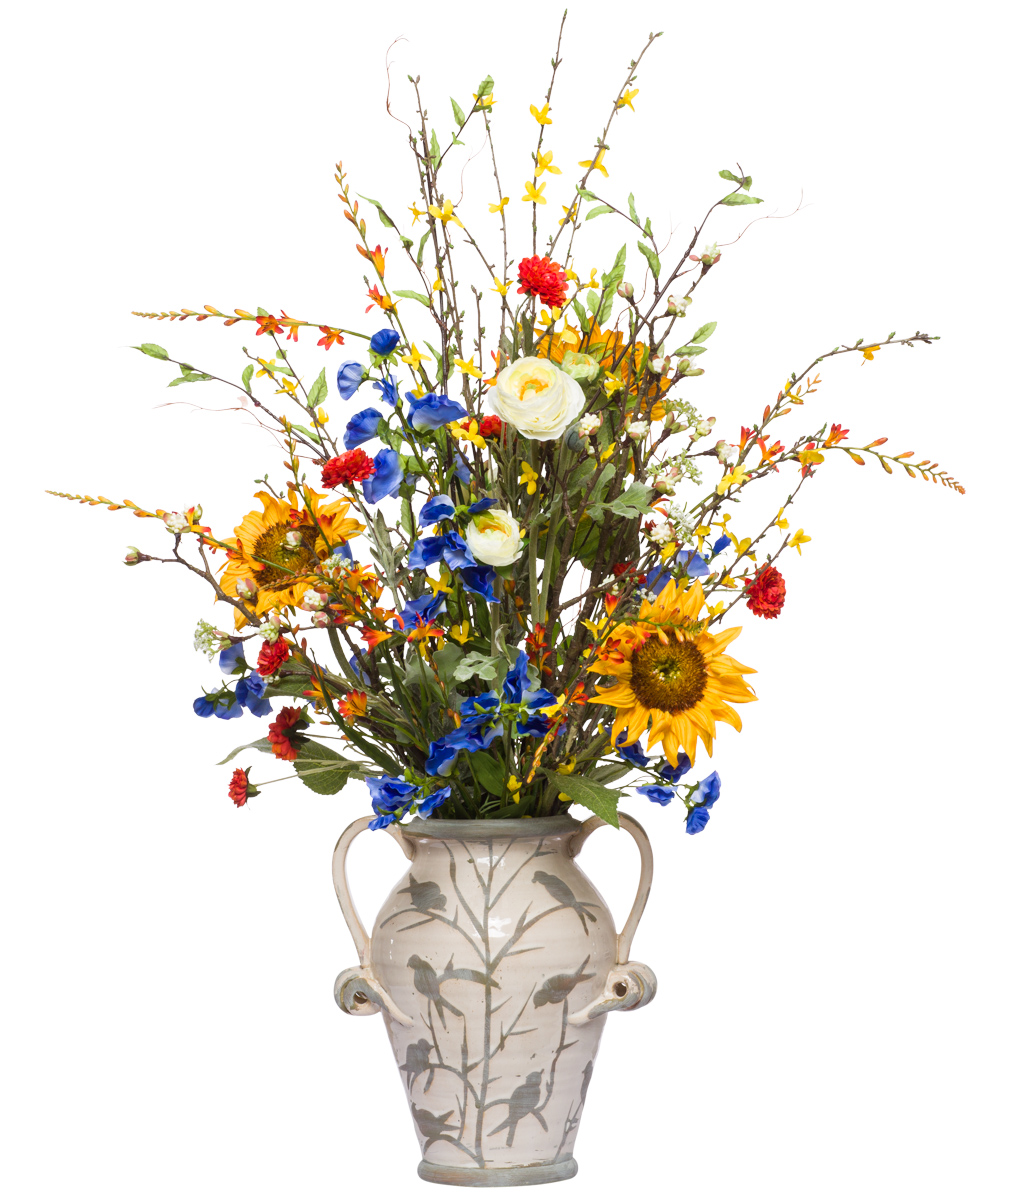 **Mixed Wildflowers in Small Bird Vase